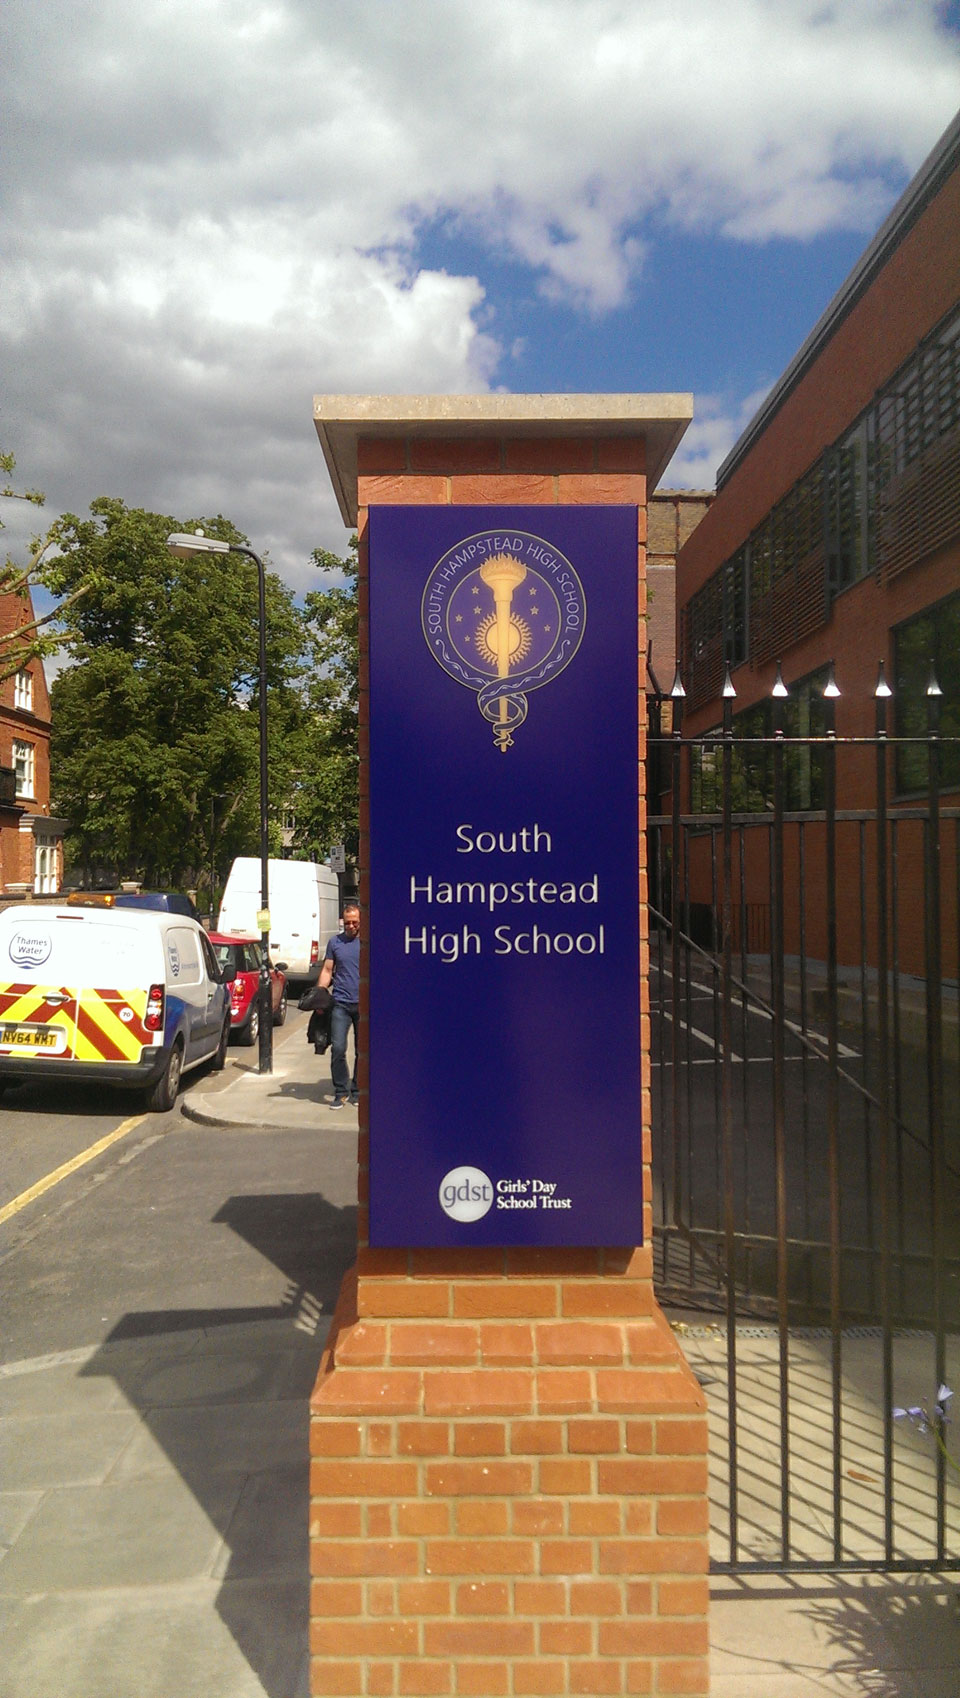 South Hampstead High School Lettering and Illumination